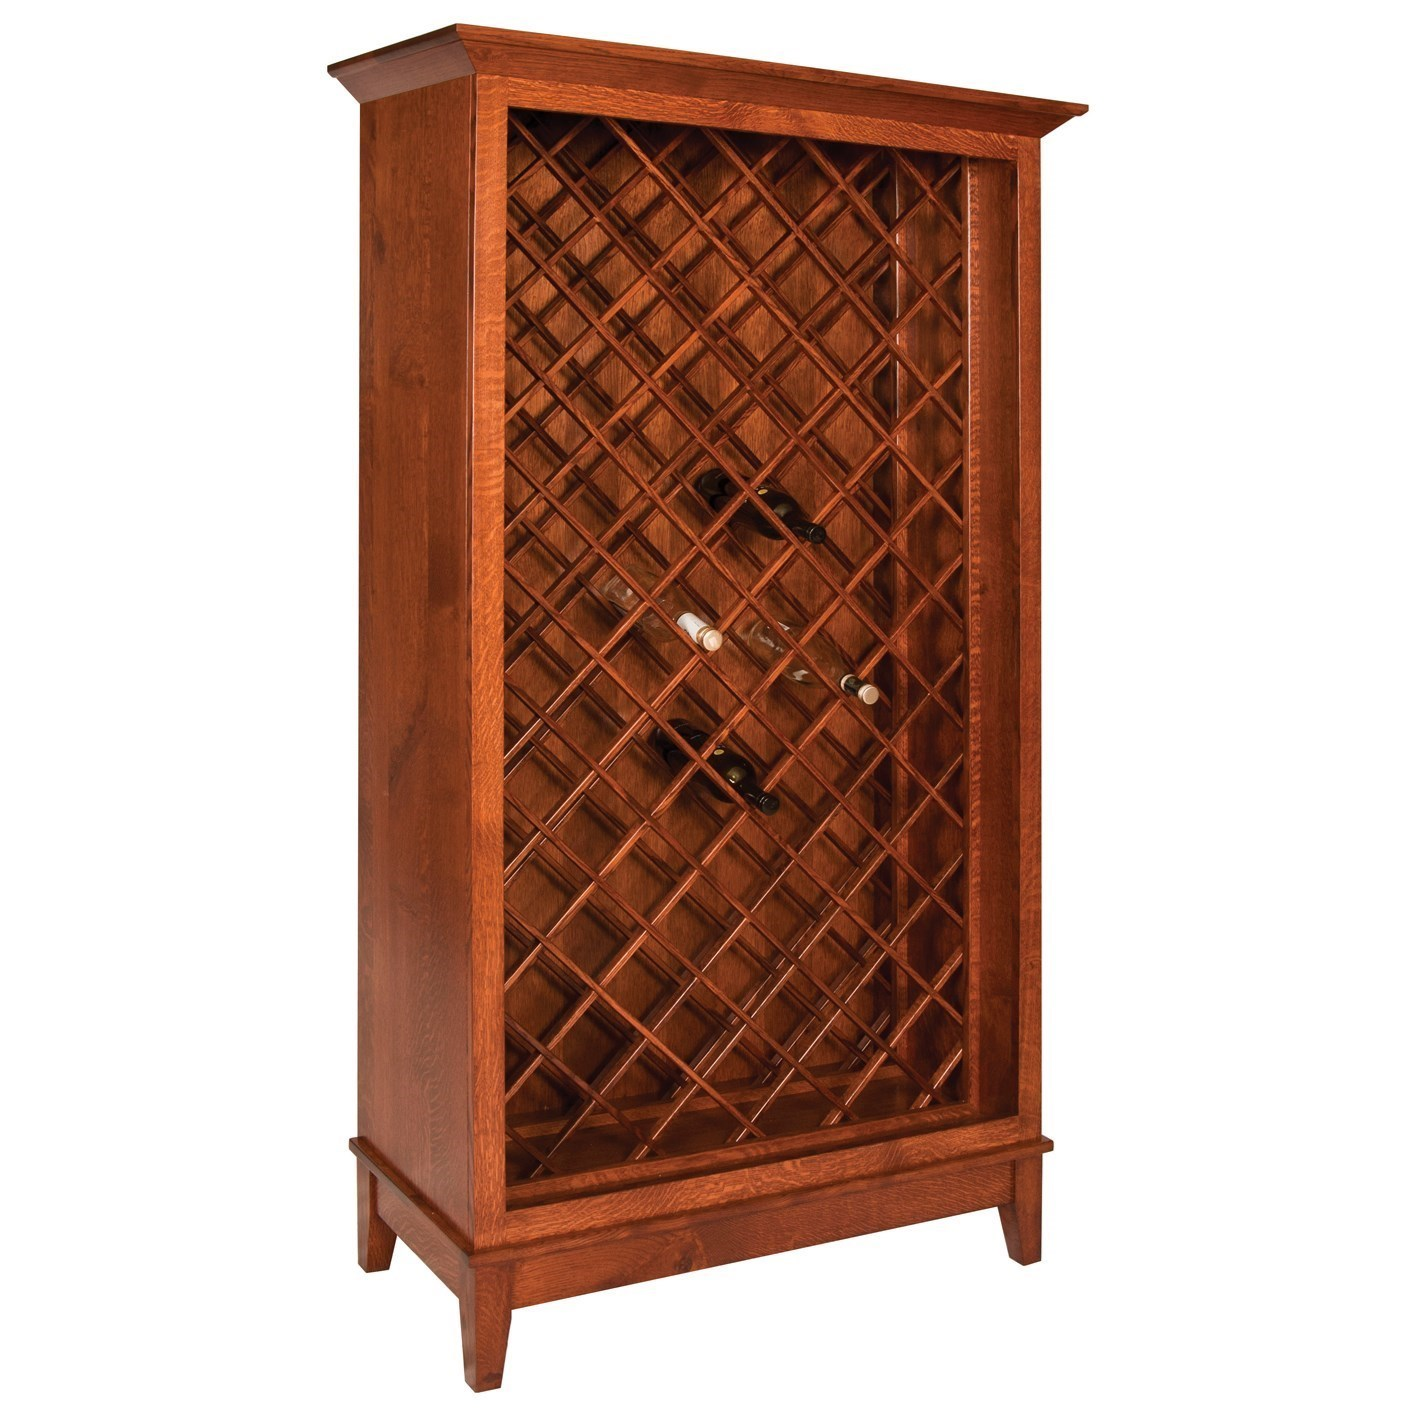 wine bottle storage furniture. Meadow Lane Wood CanterburyWine Cabinet Wine Bottle Storage Furniture